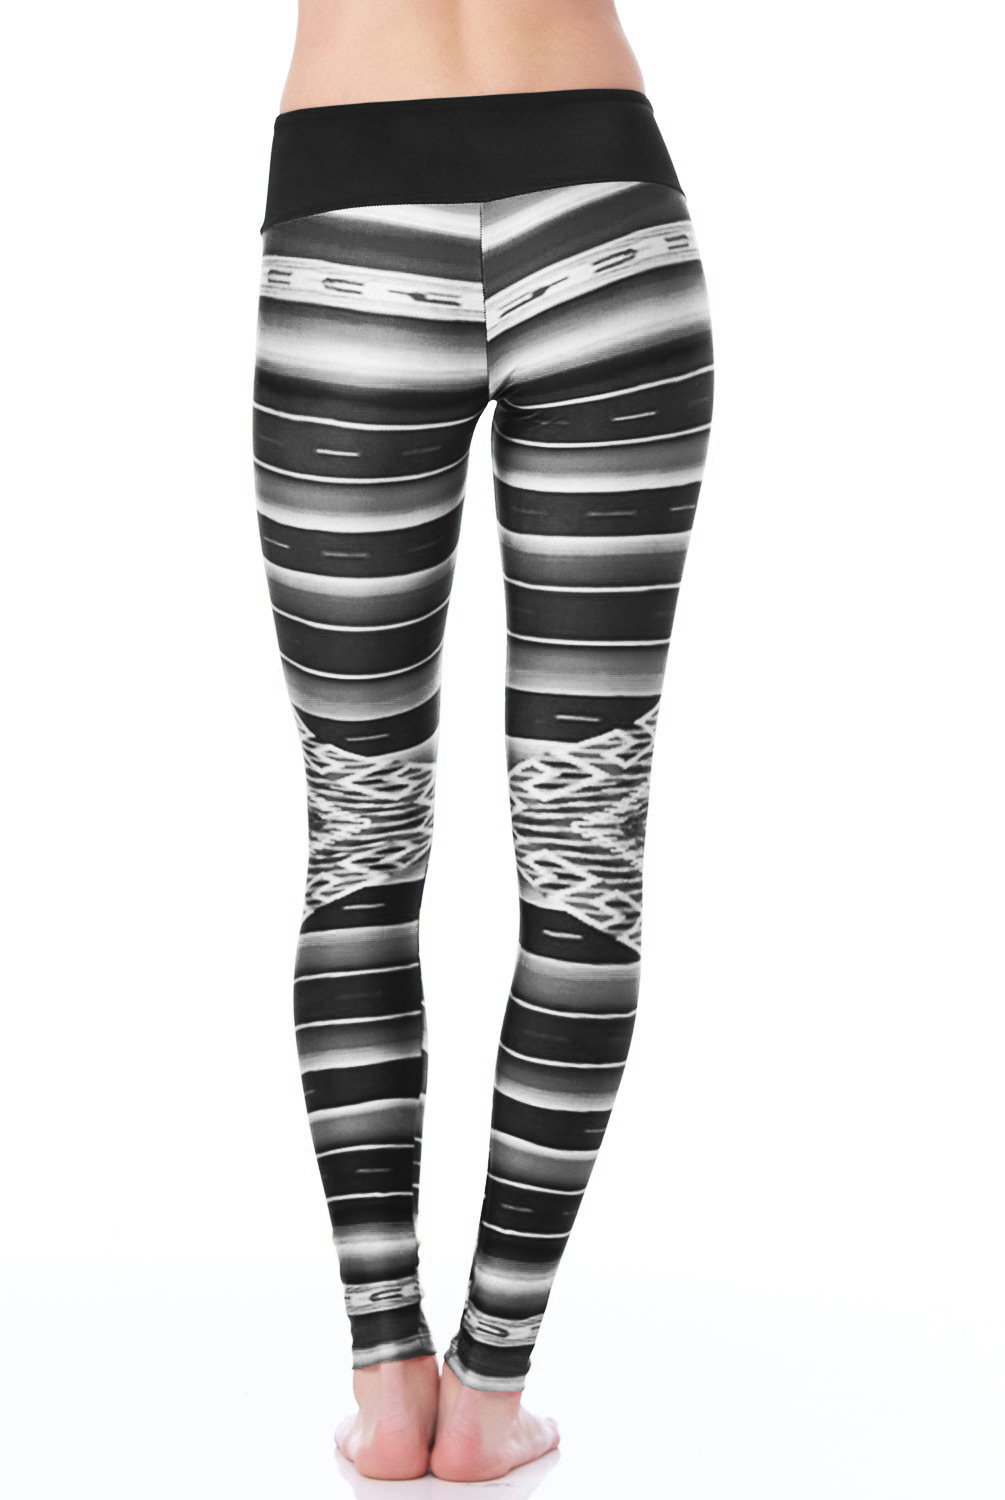 Custom sublimation printed 3xl yoga leggings